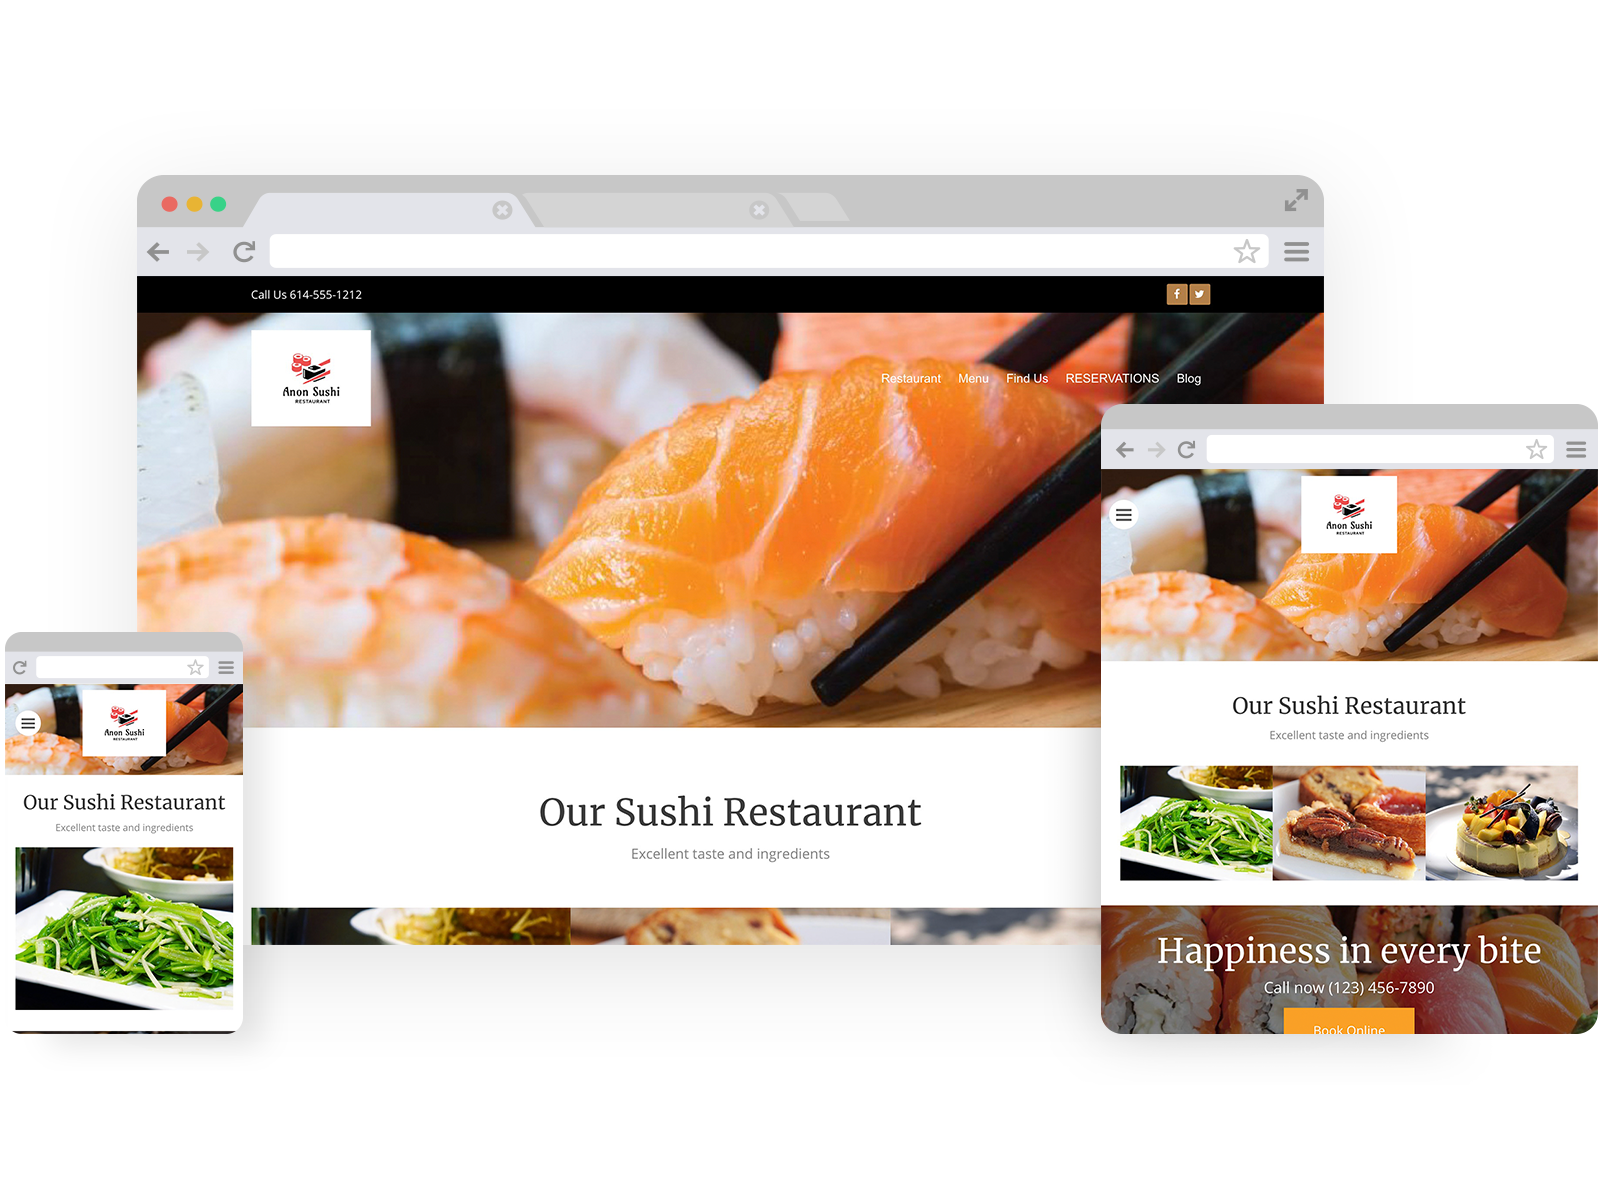 Sushi restaurant templates - template shown on Desktop, Tablet, and Mobile views.